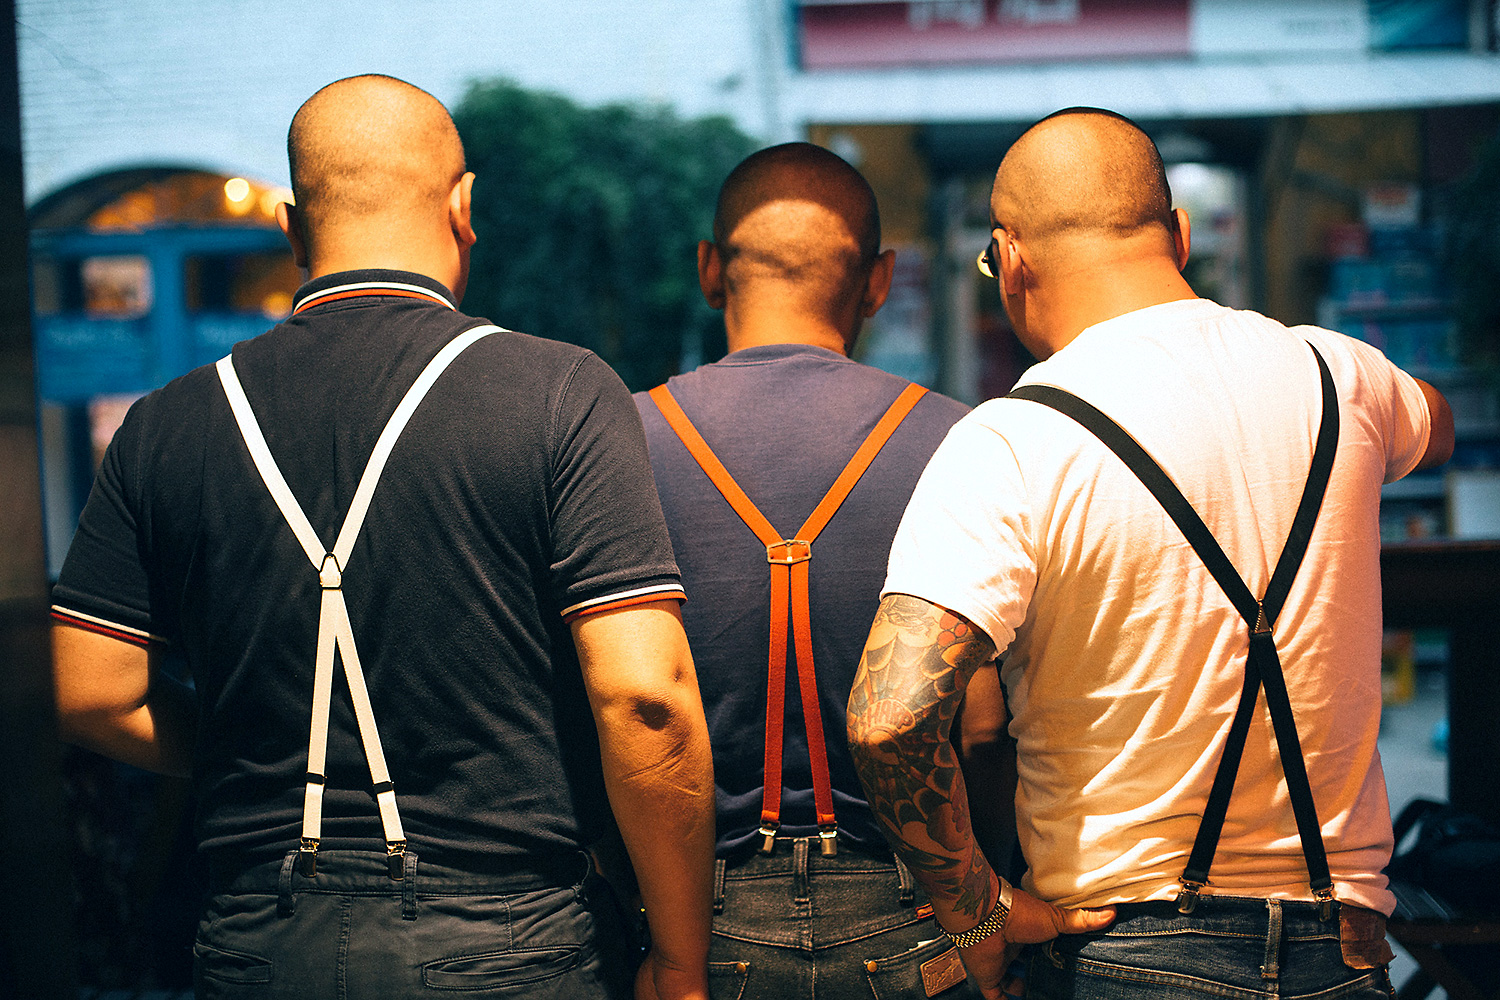 Thin suspenders, crossed at the back, are part of the standard punk attire.